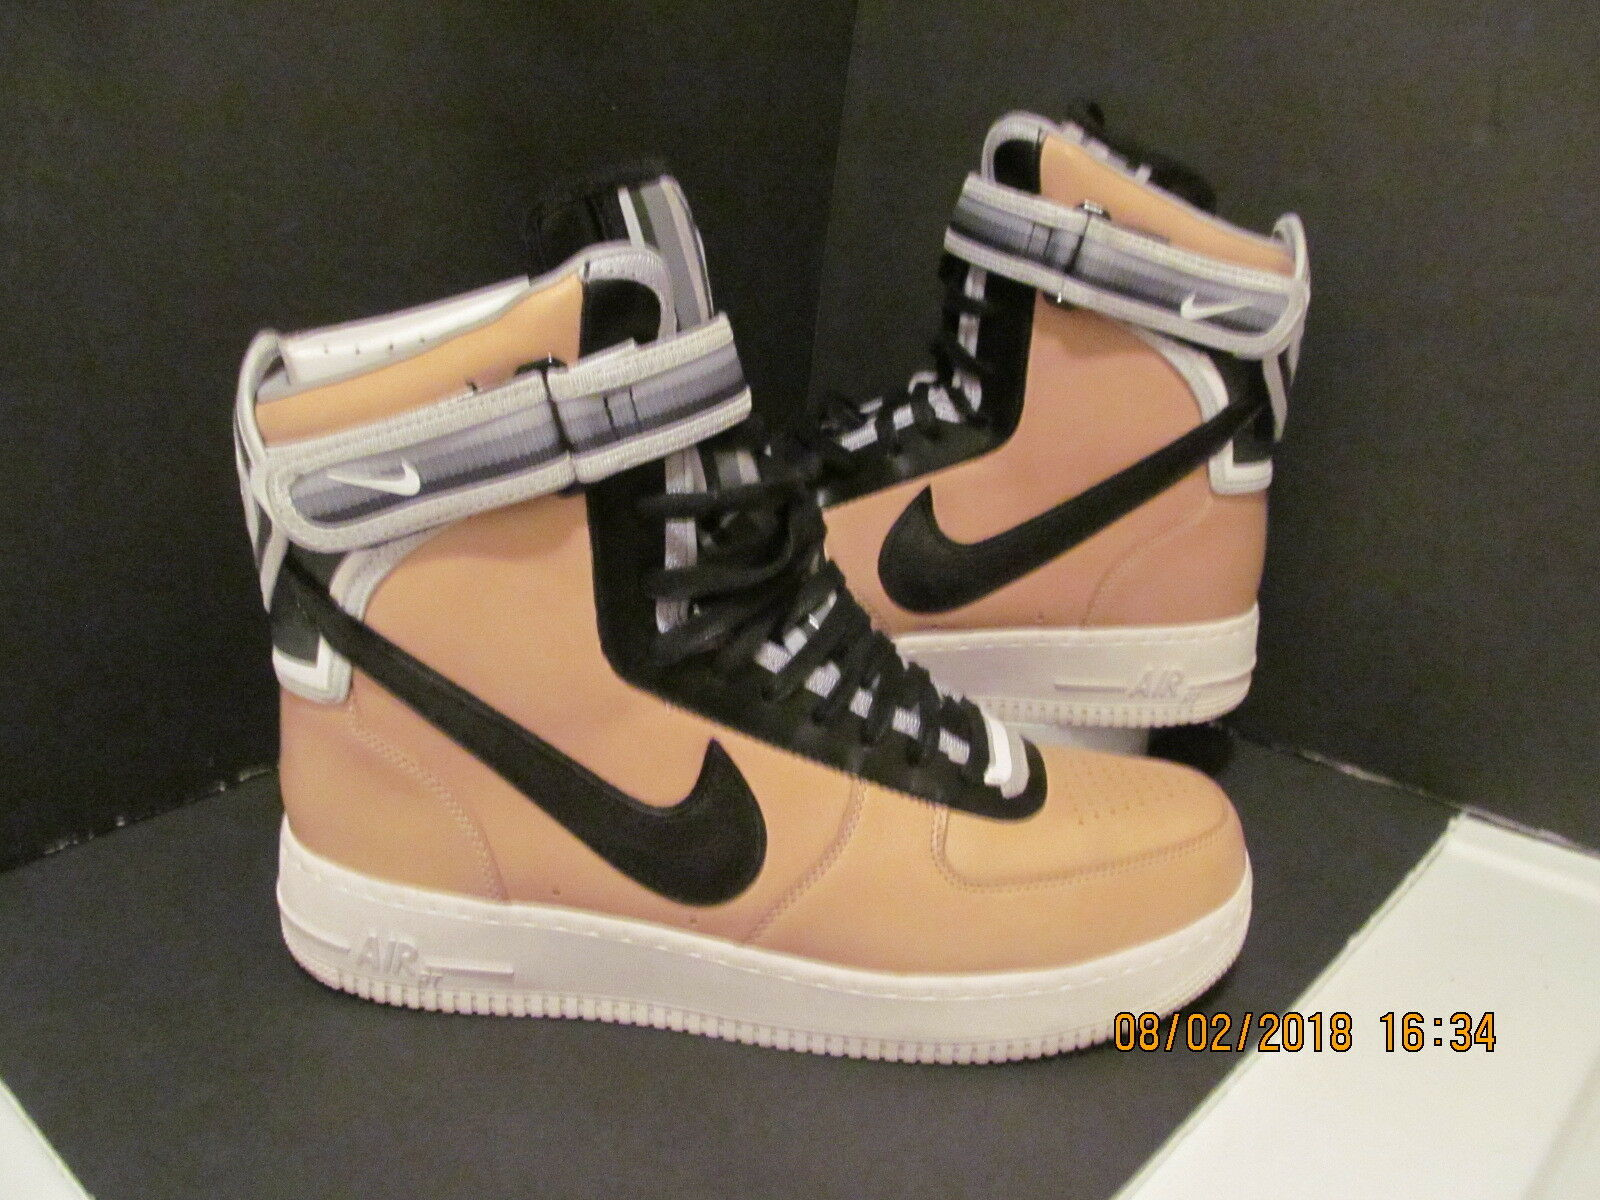 NDS W  BOX & BAG  NIKE AIR FORCE 1  HI SP RICCARDO TISCI  VACHETTA TAN BLK SZ 12